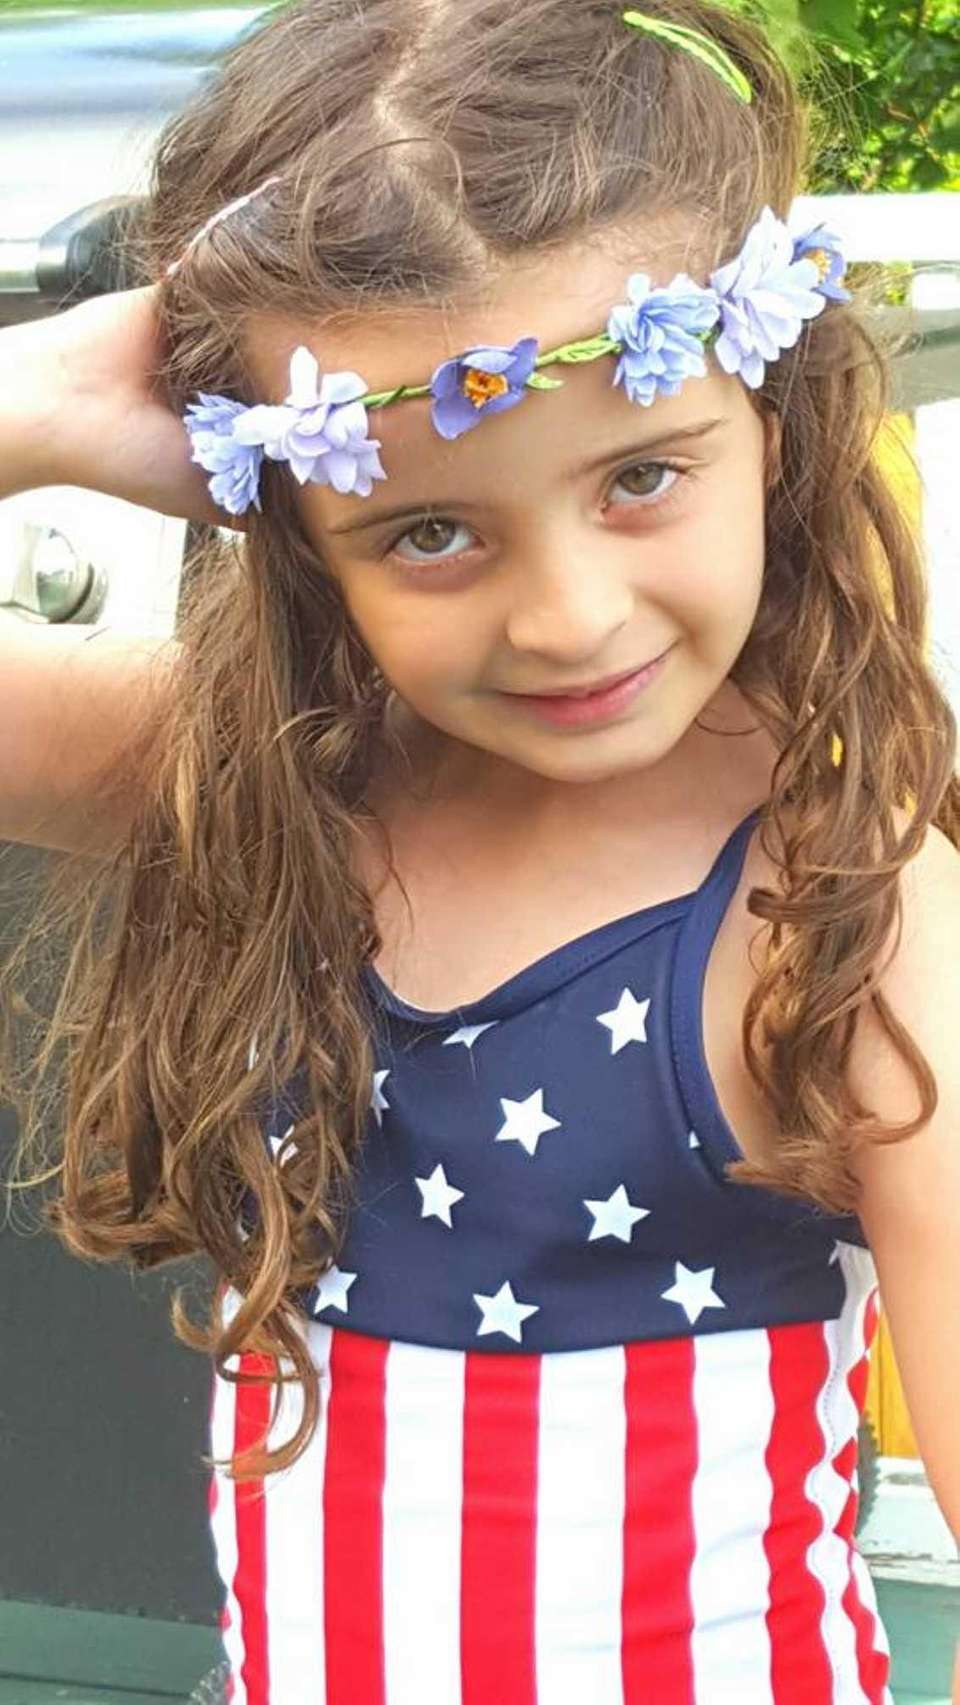 Emma wearing her Stars and Stripes, enjoying 4th